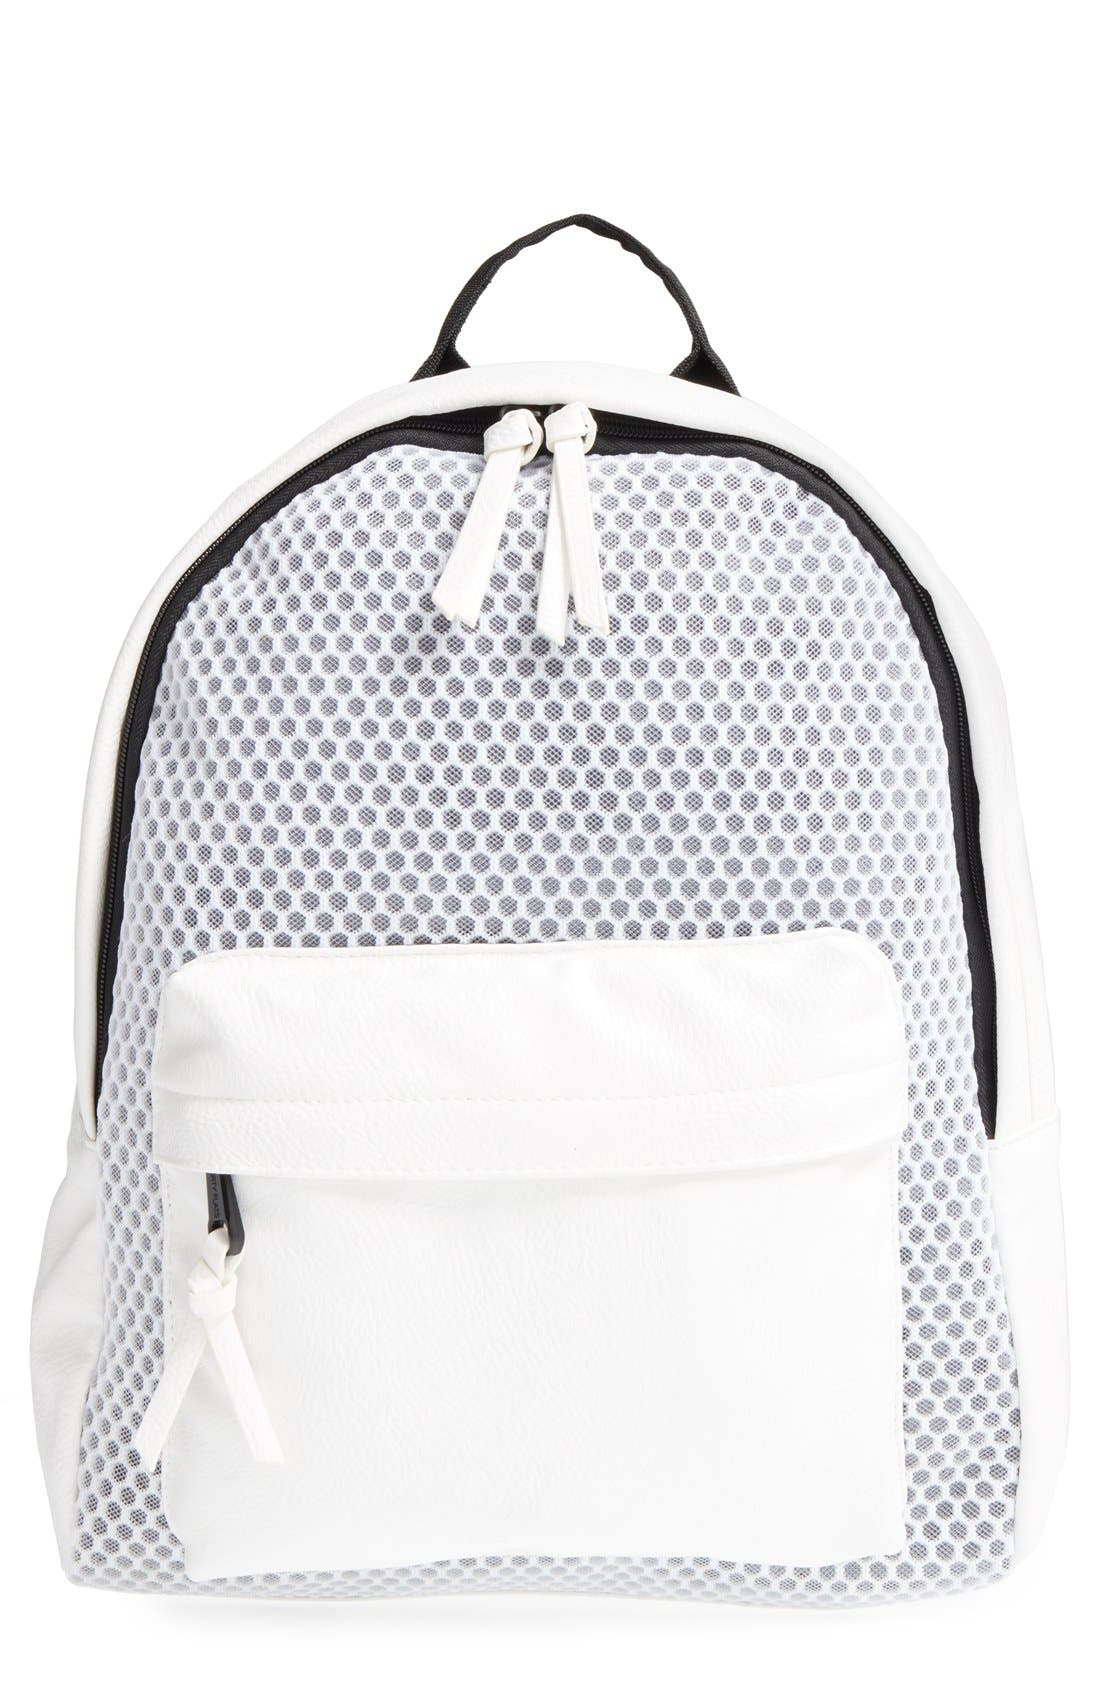 Main Image - POVERTY FLATS by rian 'Sport' Faux Leather & Mesh Backpack